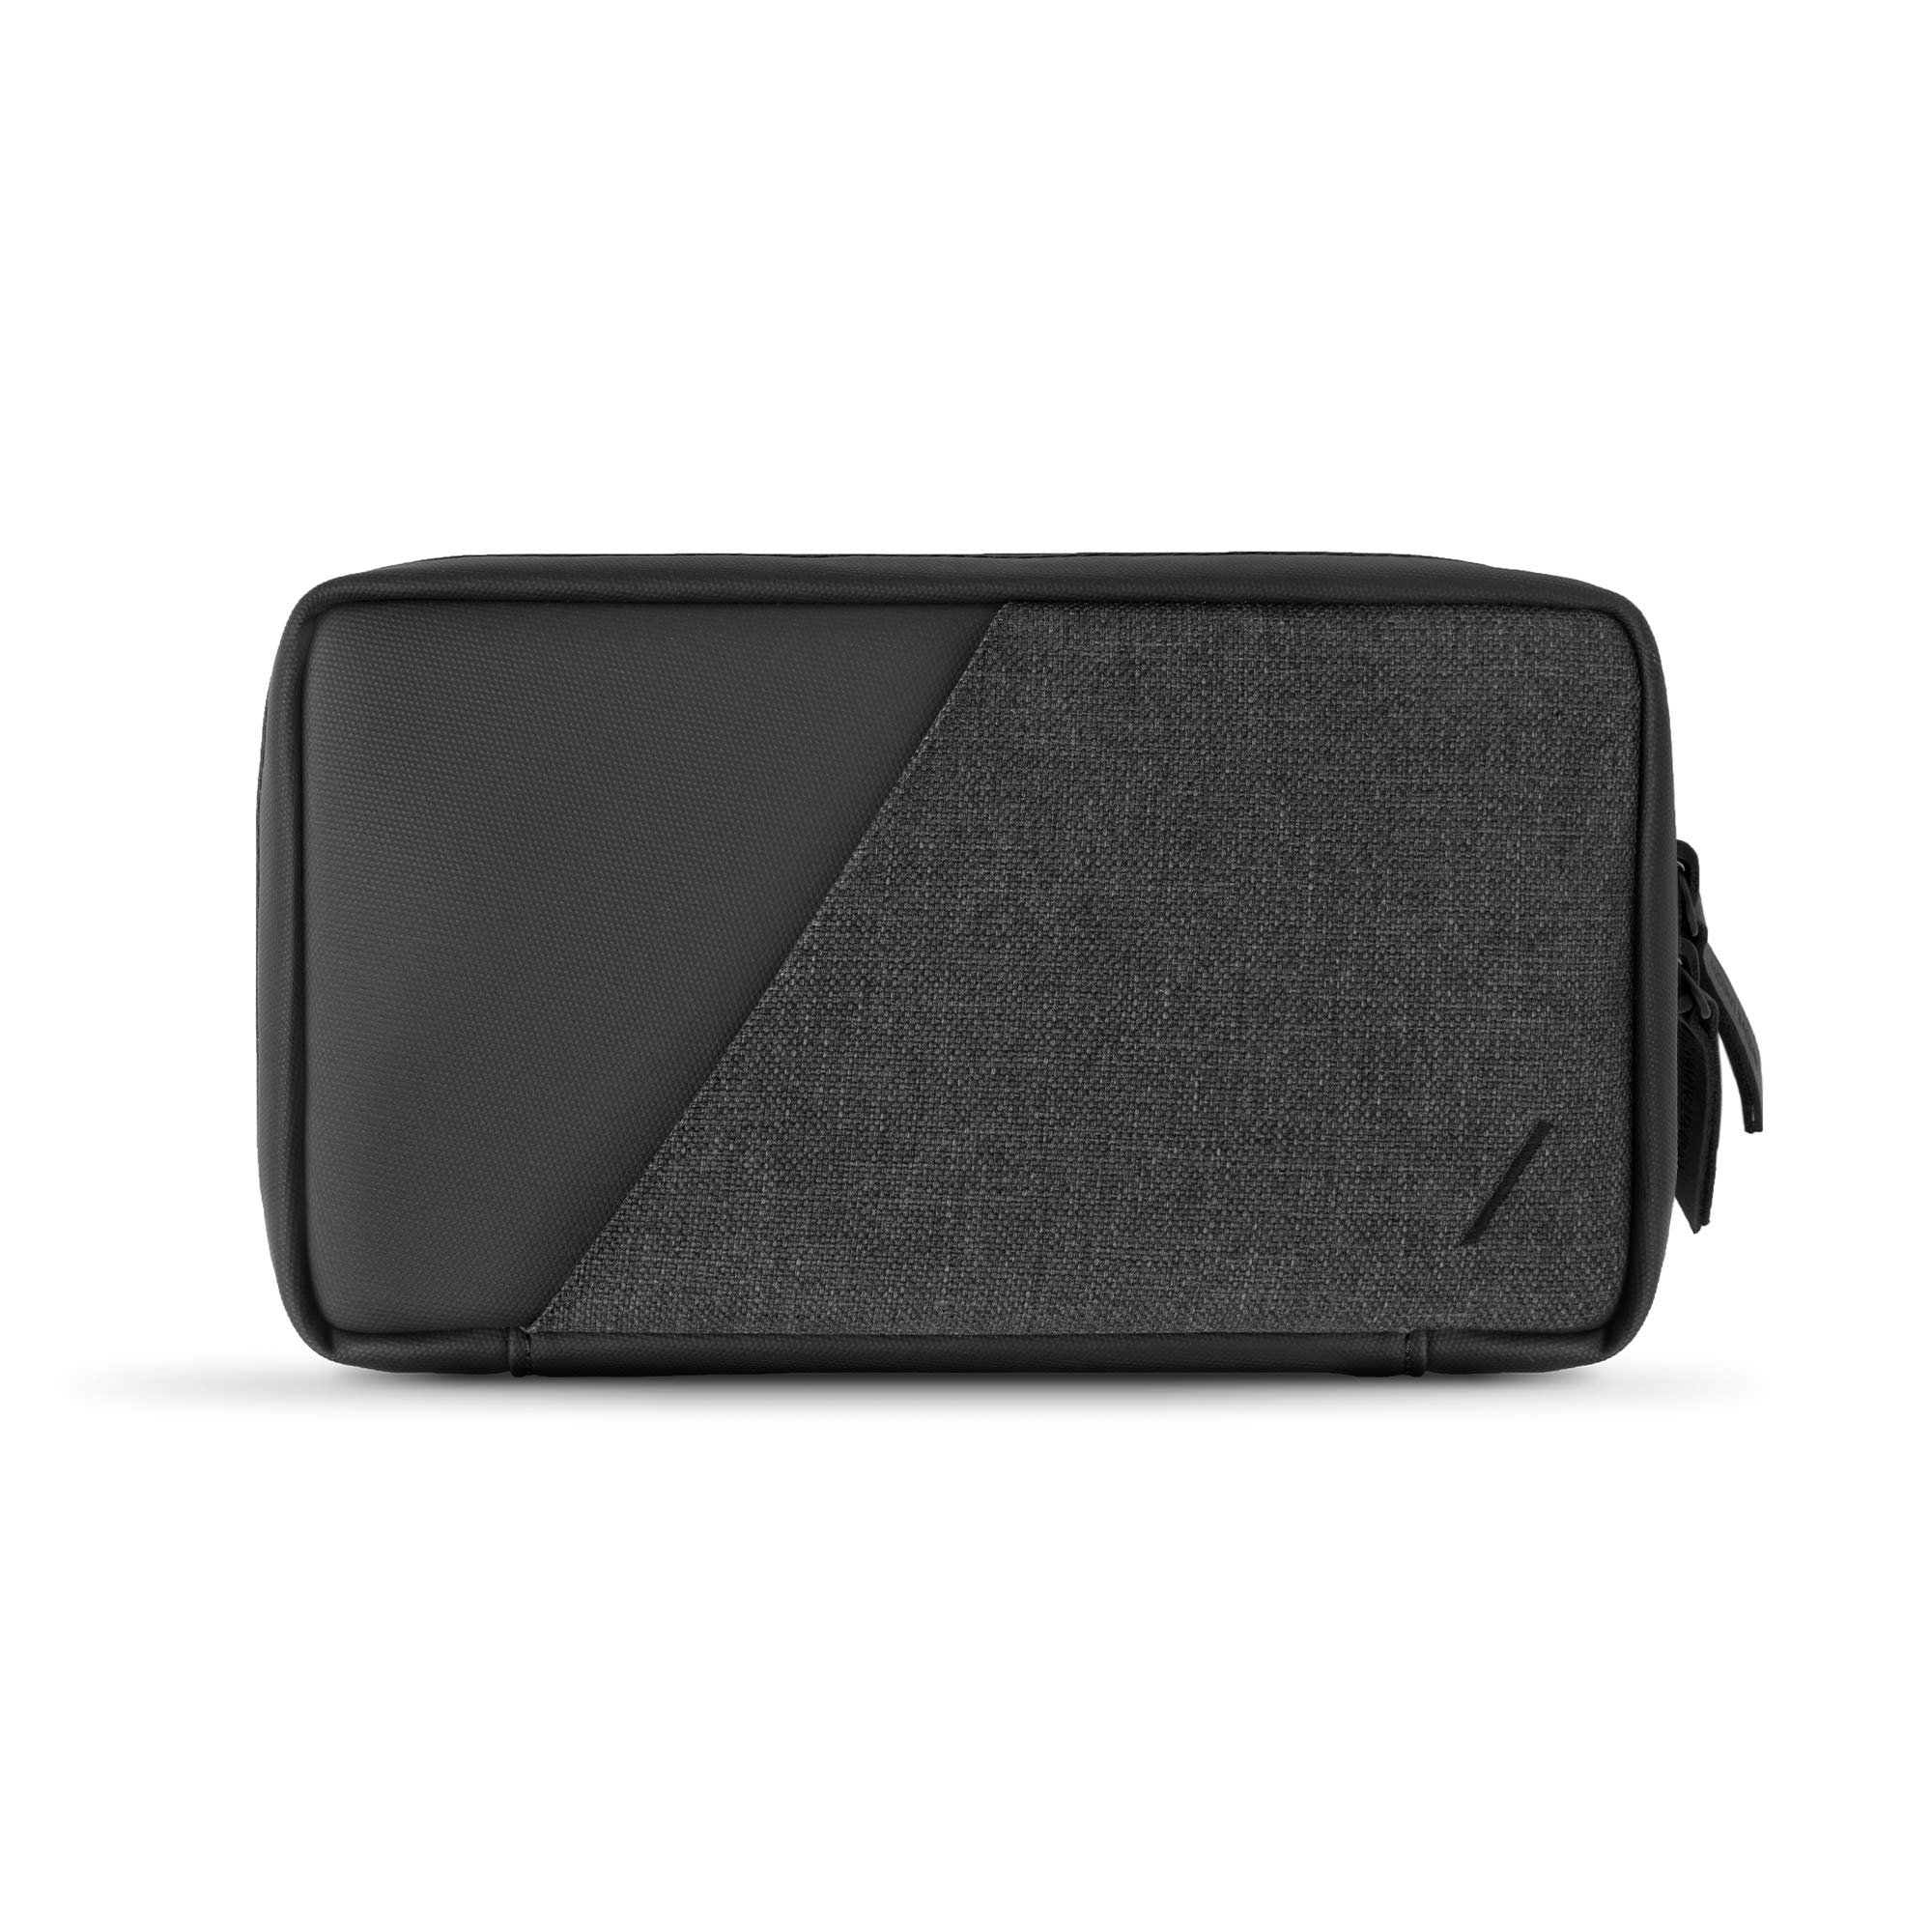 Native Union Stow Organizer - Lightweight Travel Pouch Crafted with Durable Canvas (Slate)